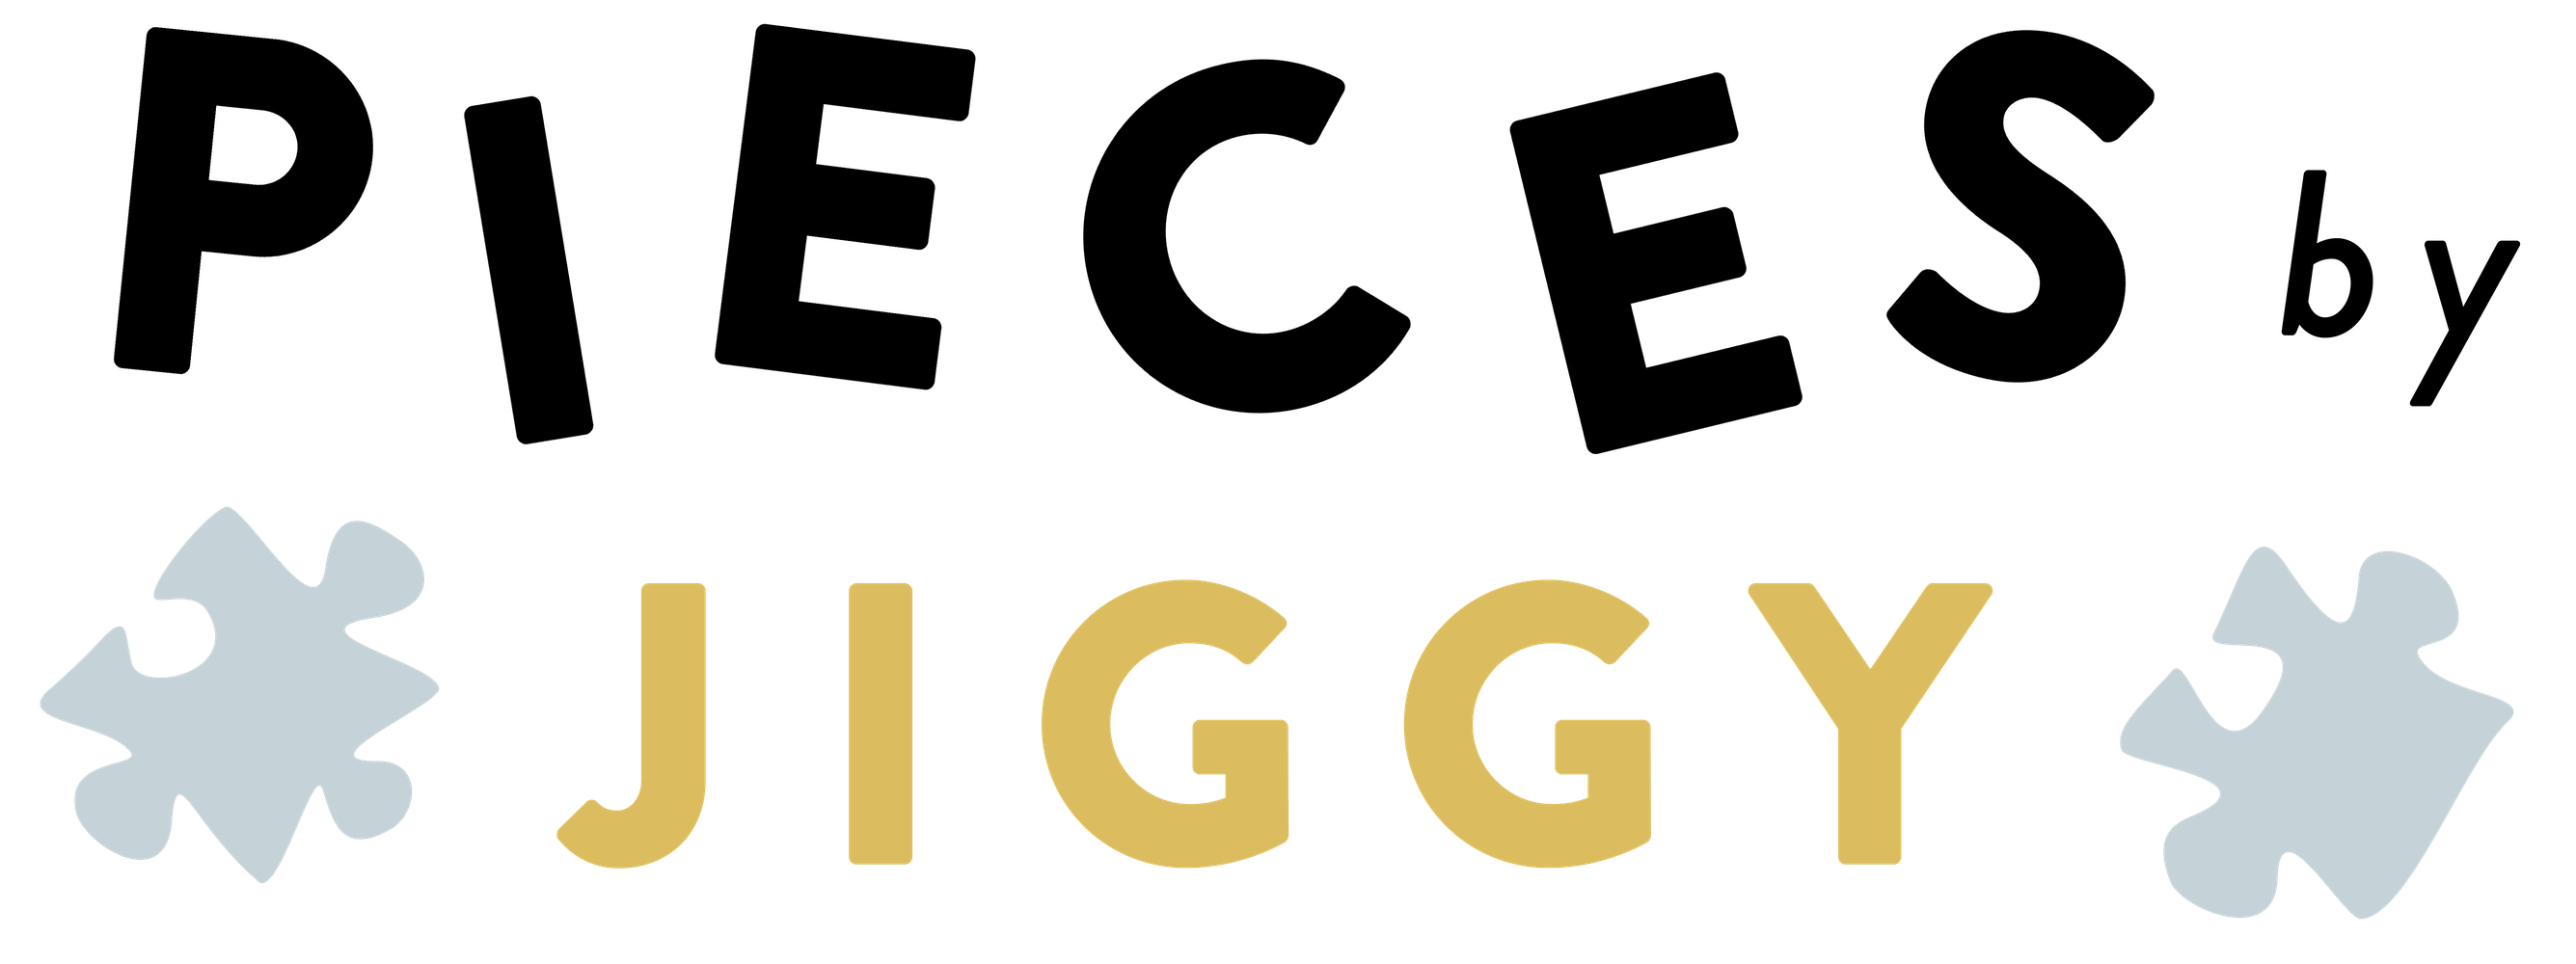 Pieces by JIGGY blog